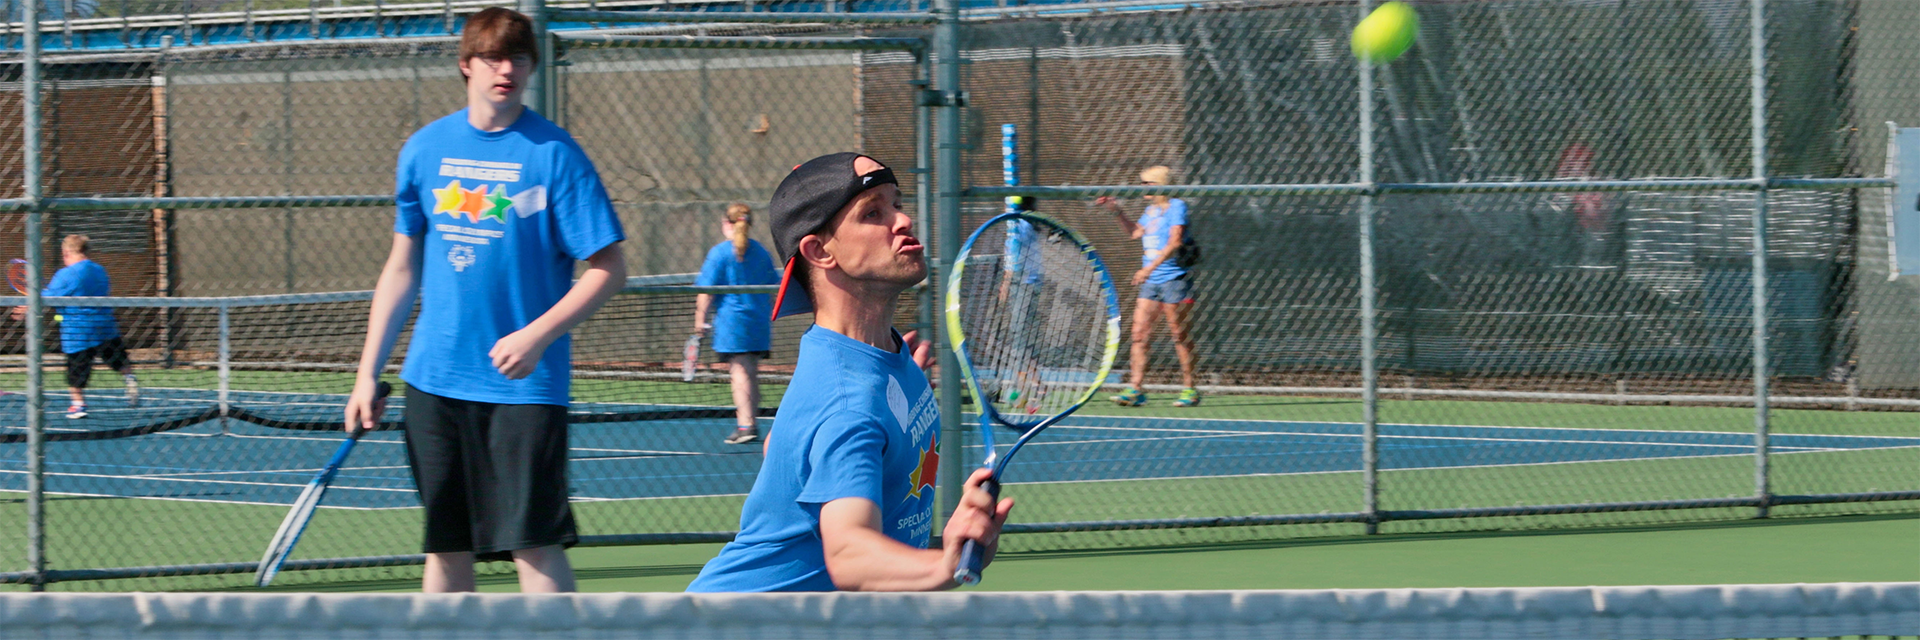 Special Olympics Minnesota tennis athlete preparing to hit tennis ball while teammate watches from behind